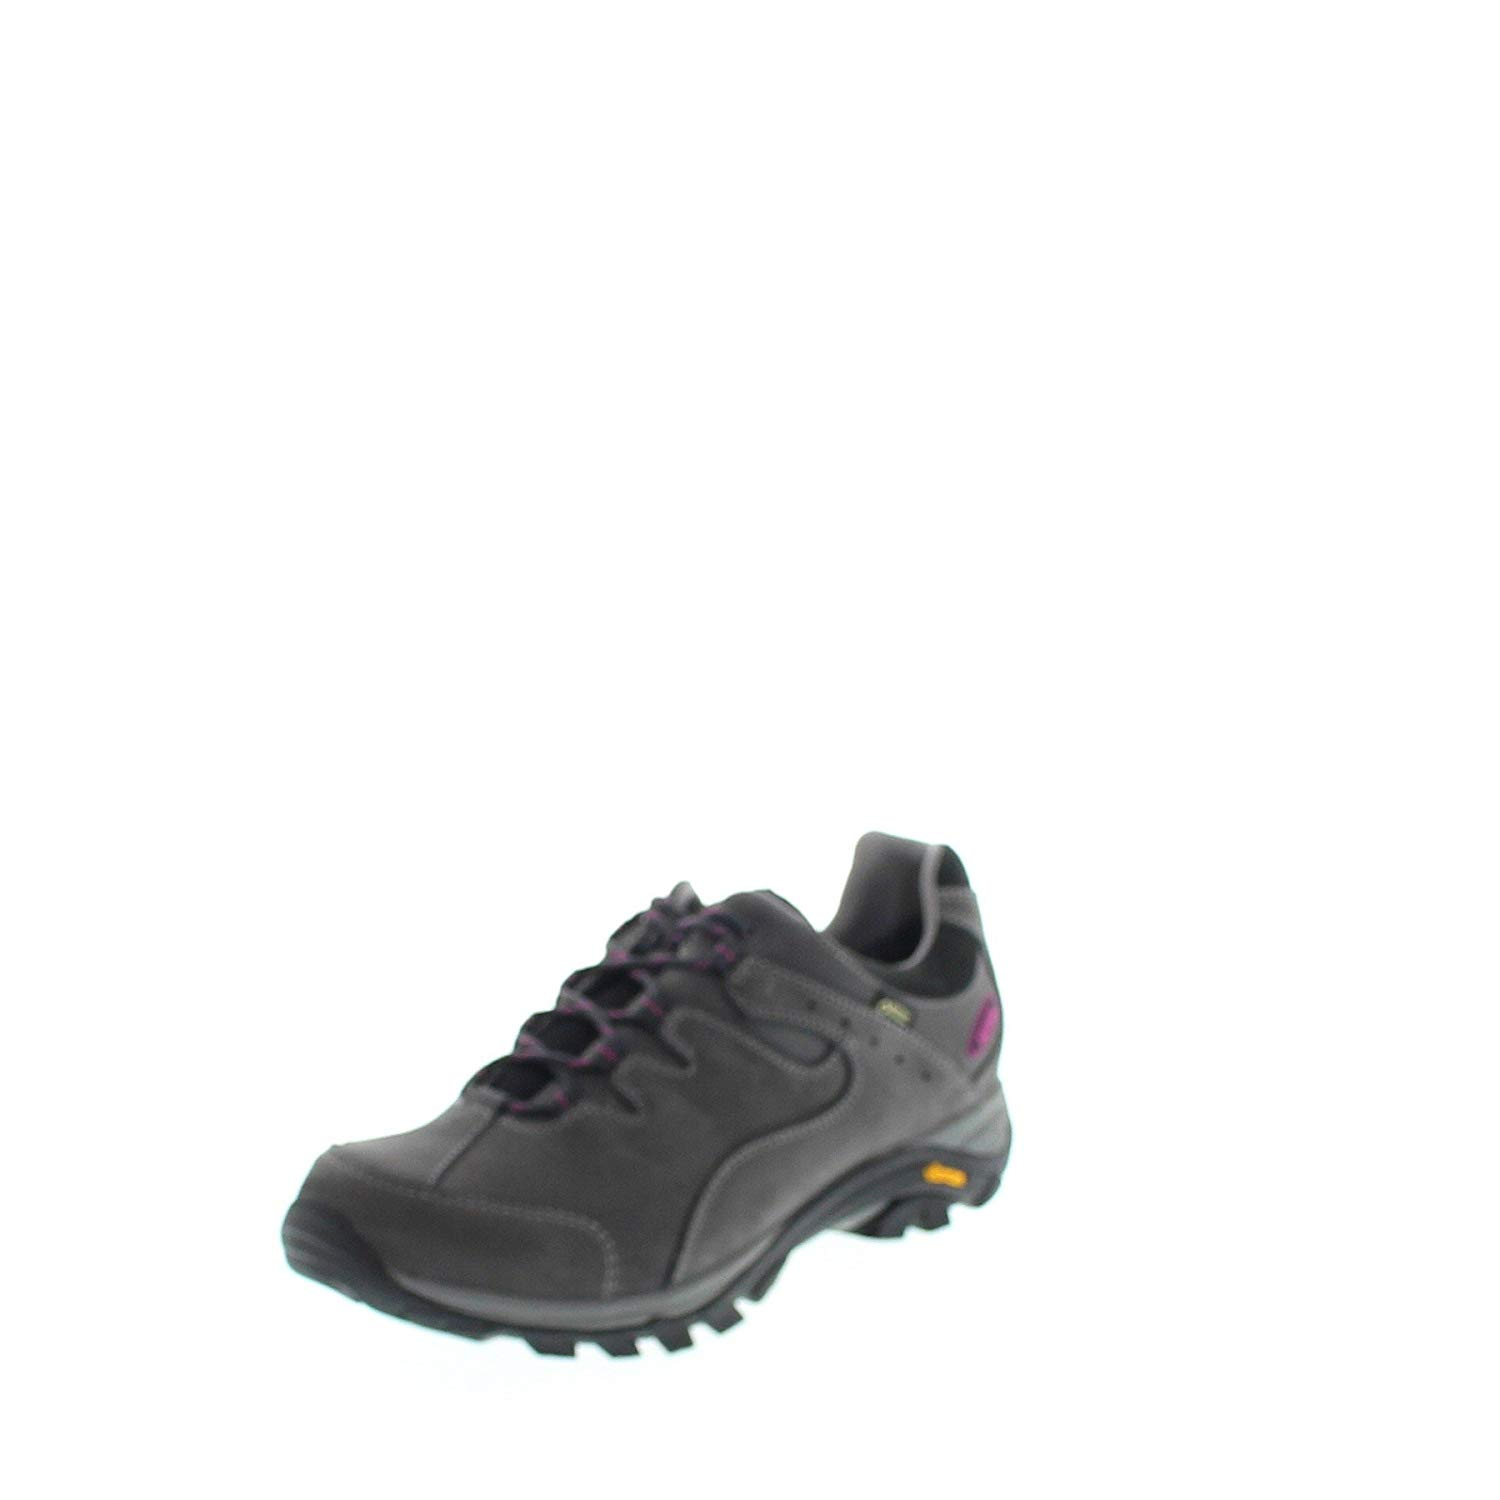 541f3cba Cheap Meindl Gtx, find Meindl Gtx deals on line at Alibaba.com